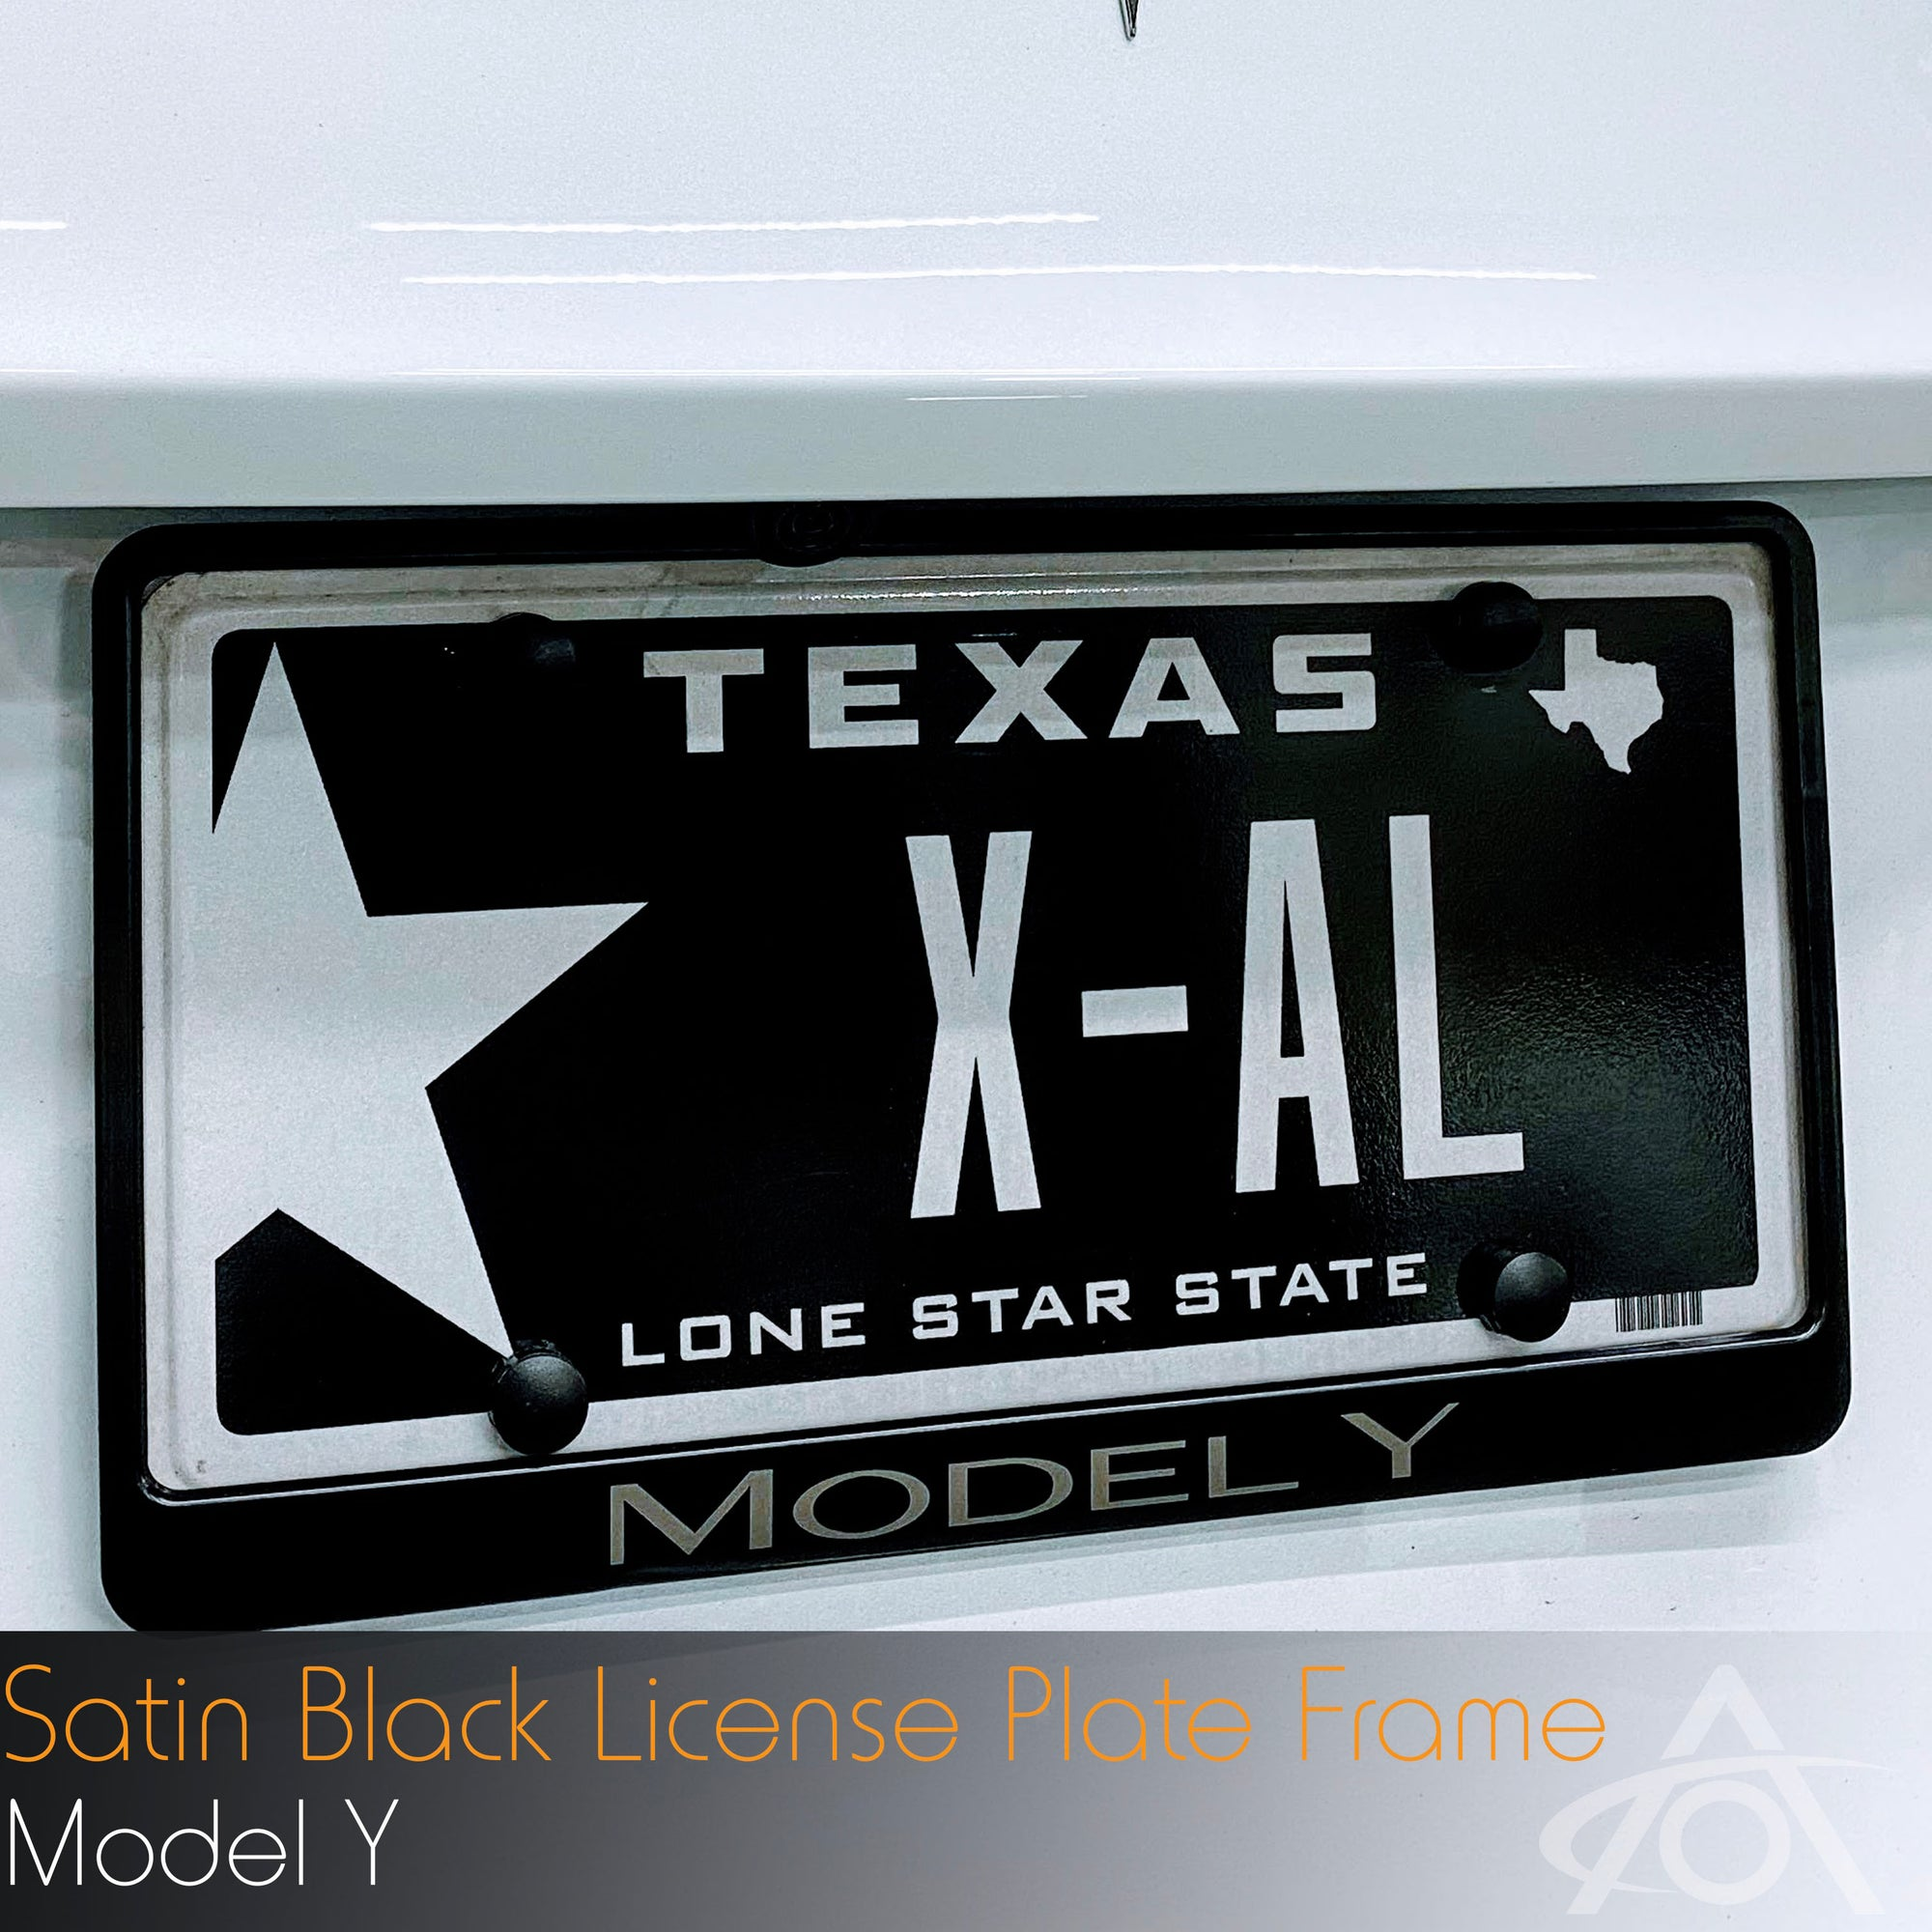 Satin Black License Plate Frame